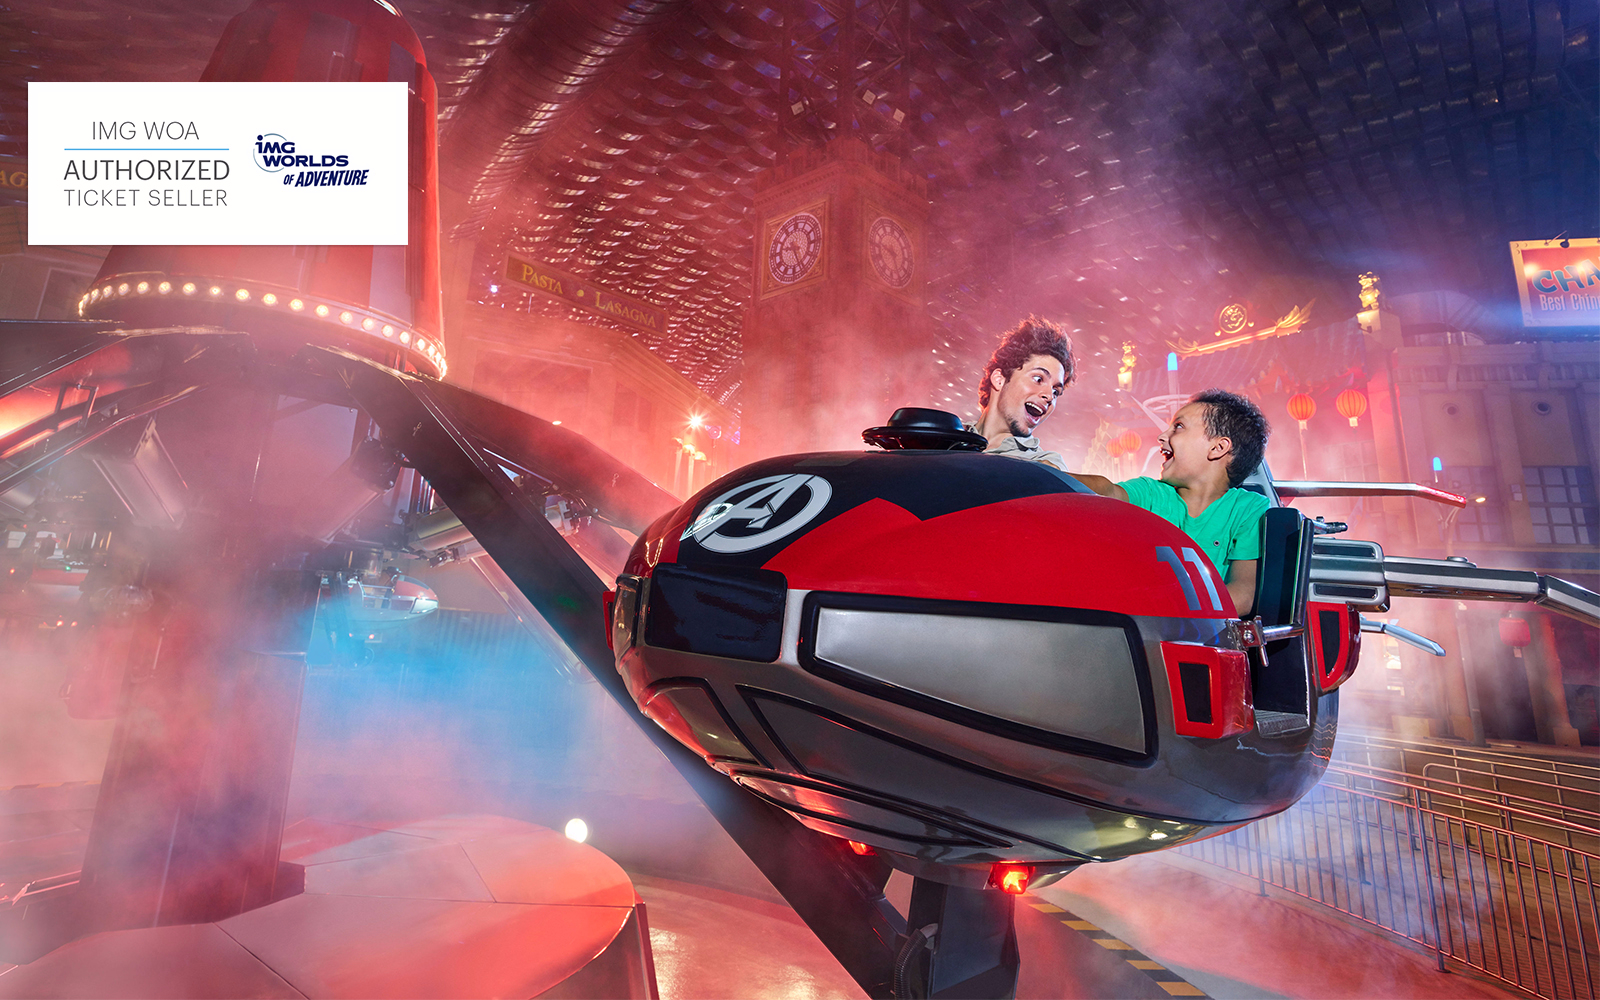 5f7d2336 30d9 4254 a600 34bc2d77092b 6867 dubai img worlds of adventure fast track access 03